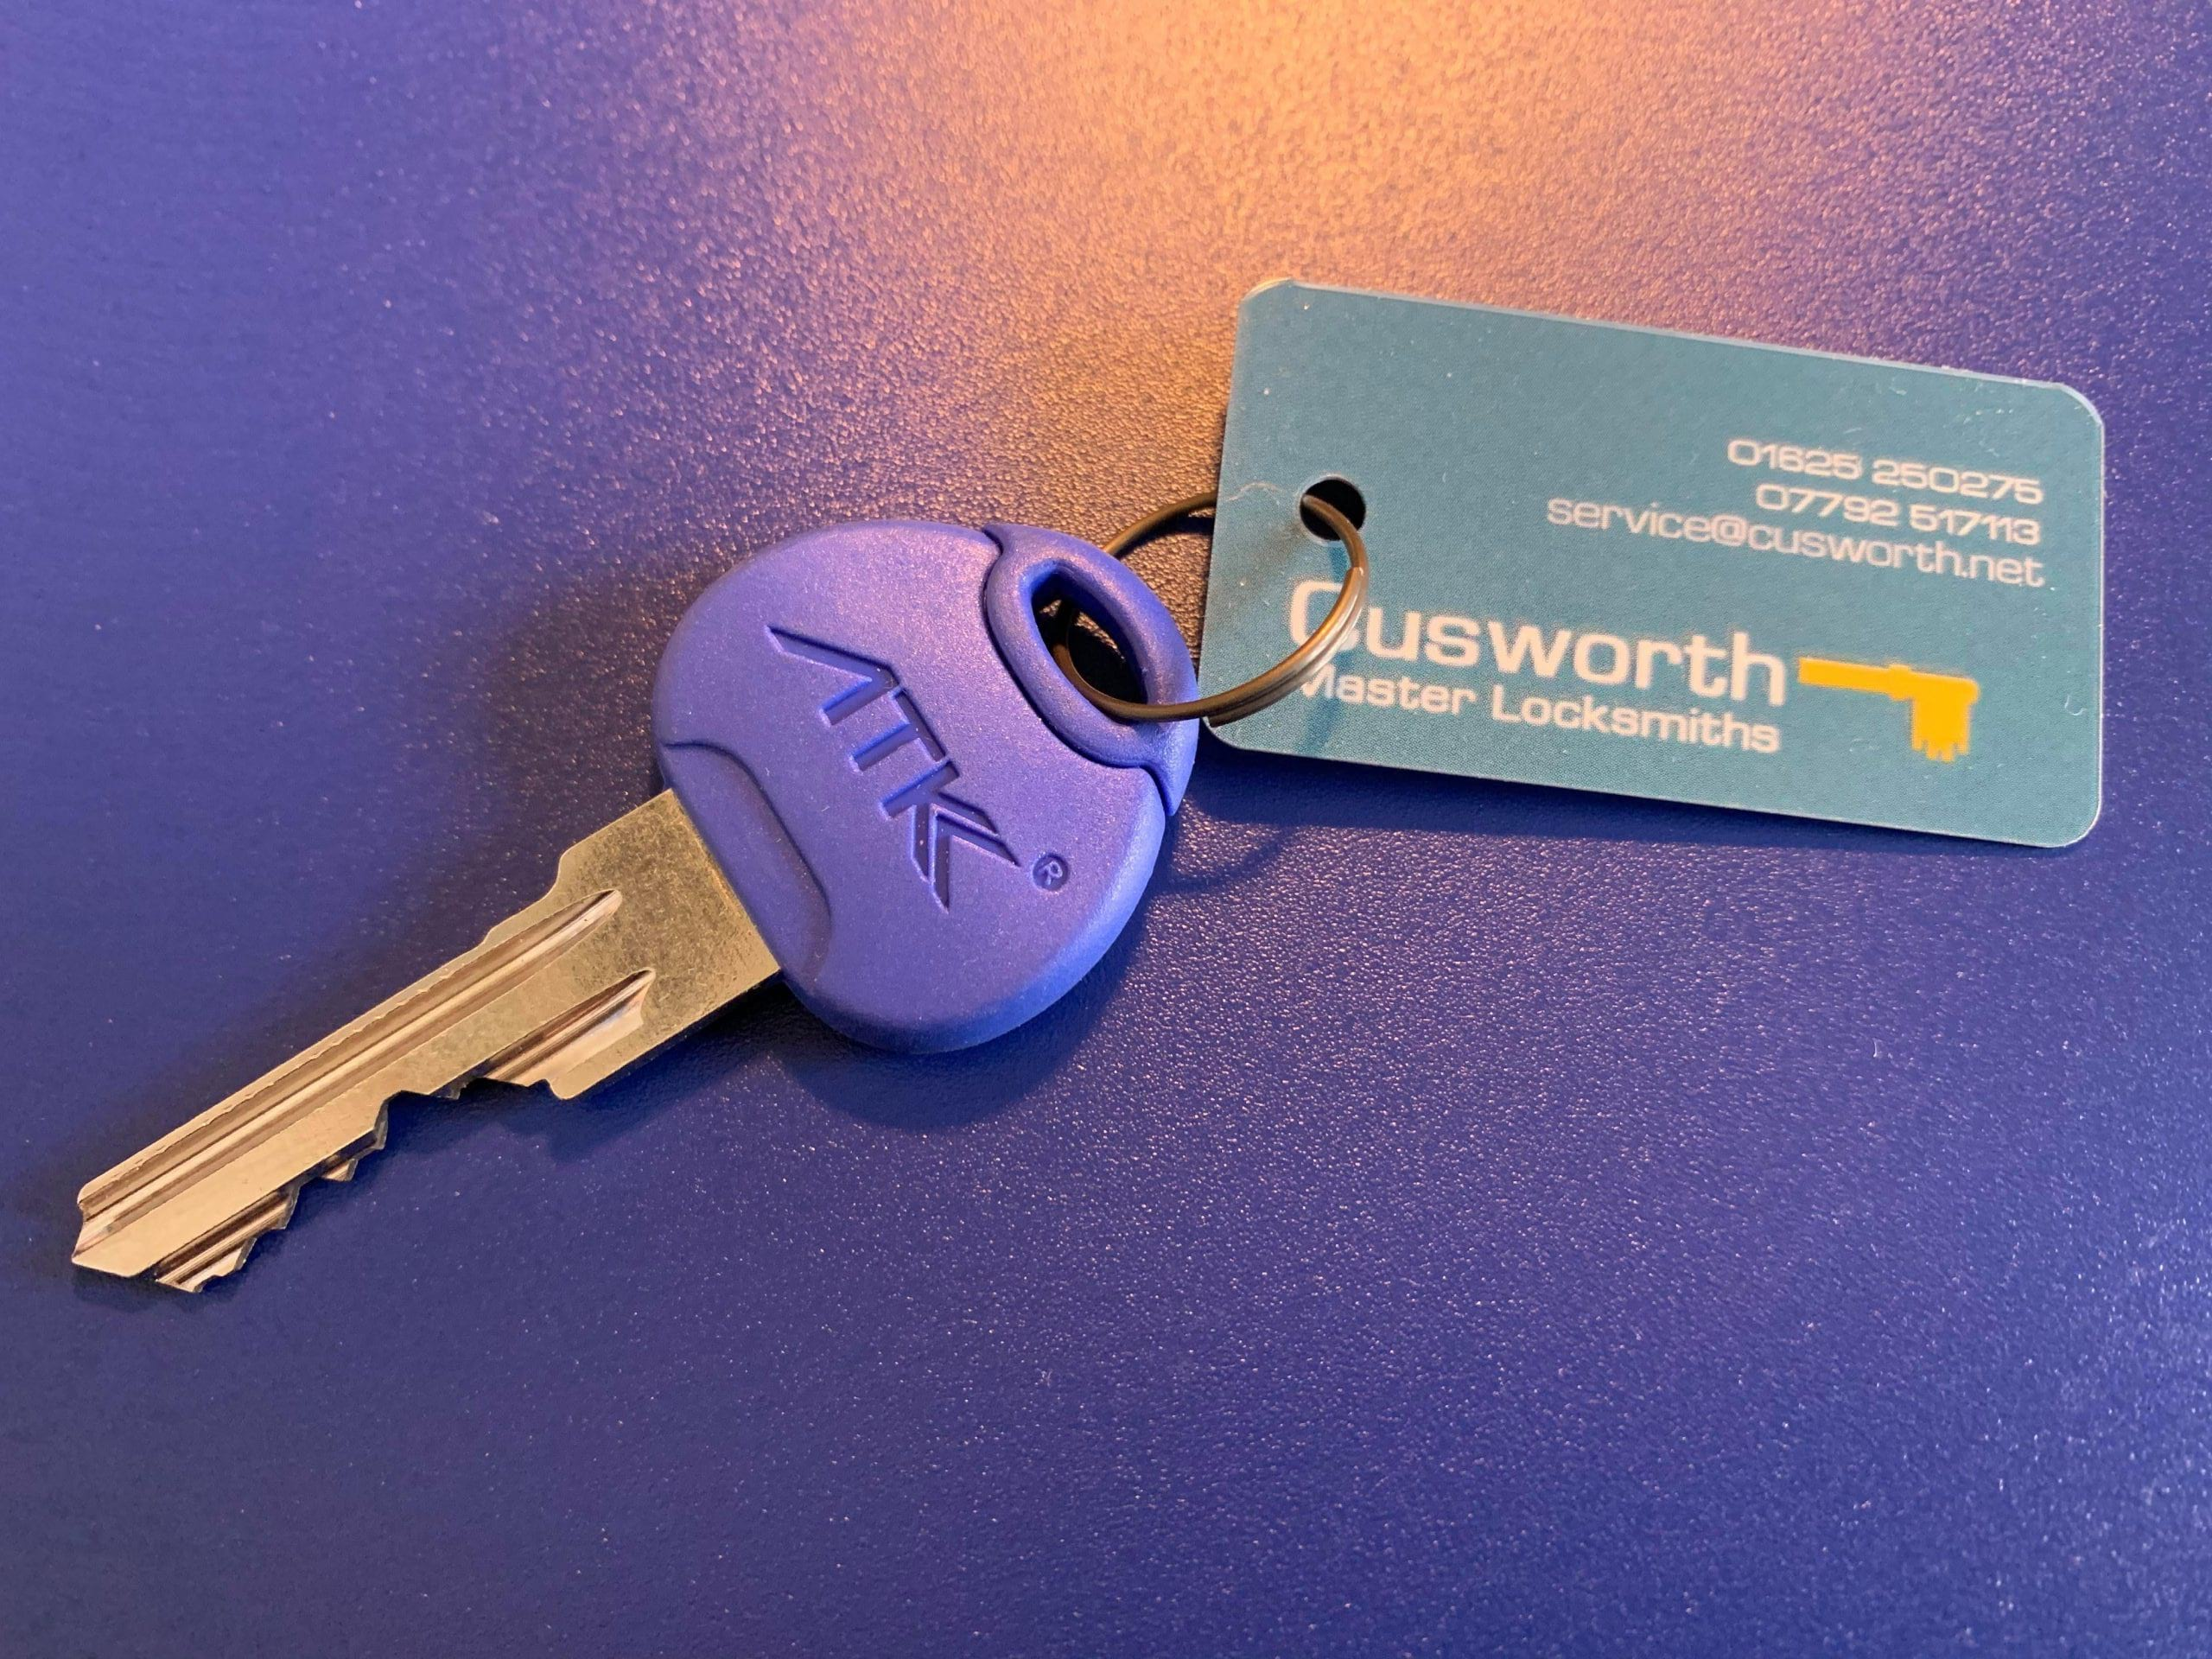 ATK Avocet key cut by Cusworth Master Locksmiths.